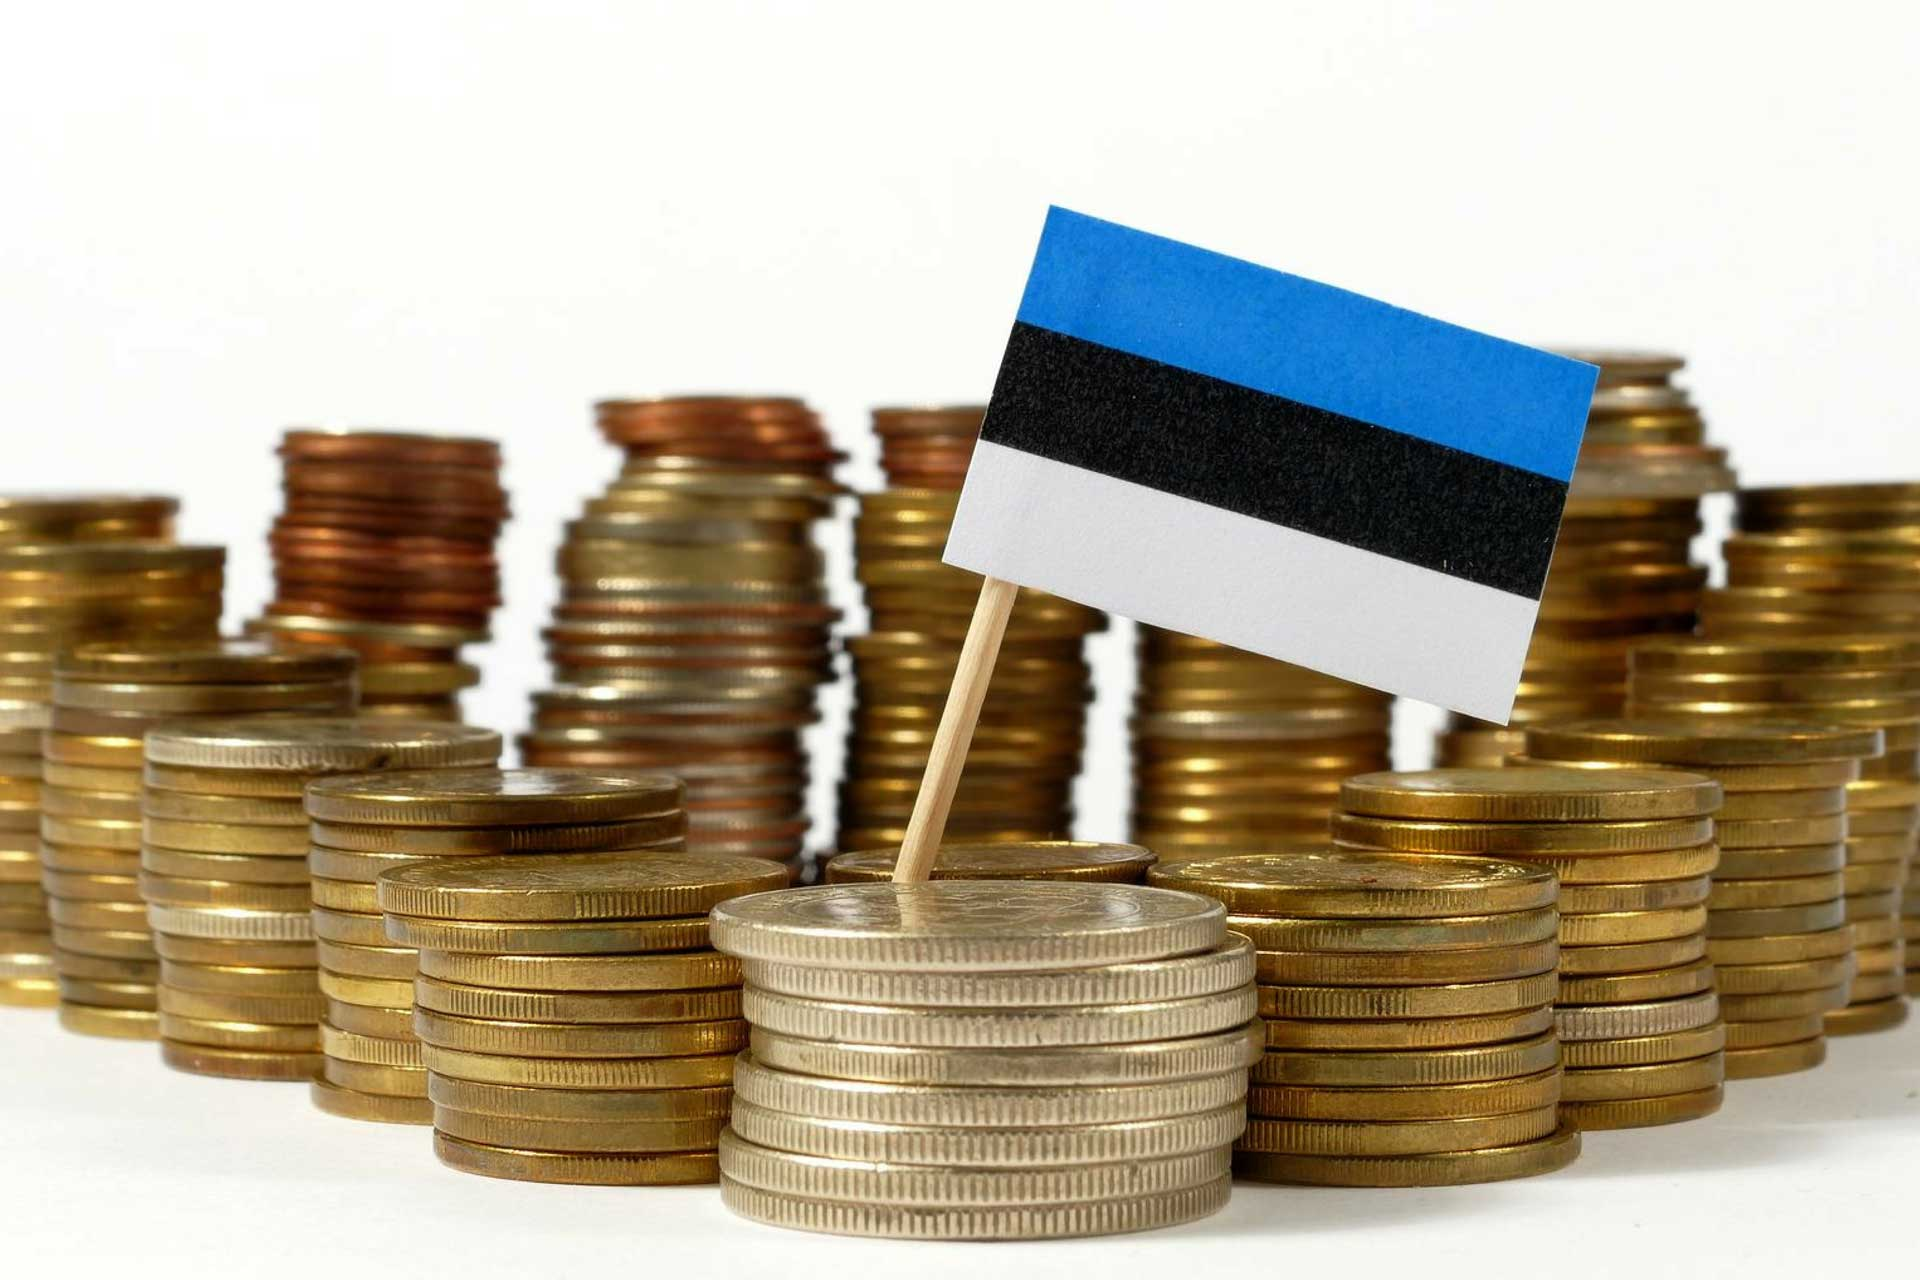 estonia cryptocurrency regulation and paying taxes